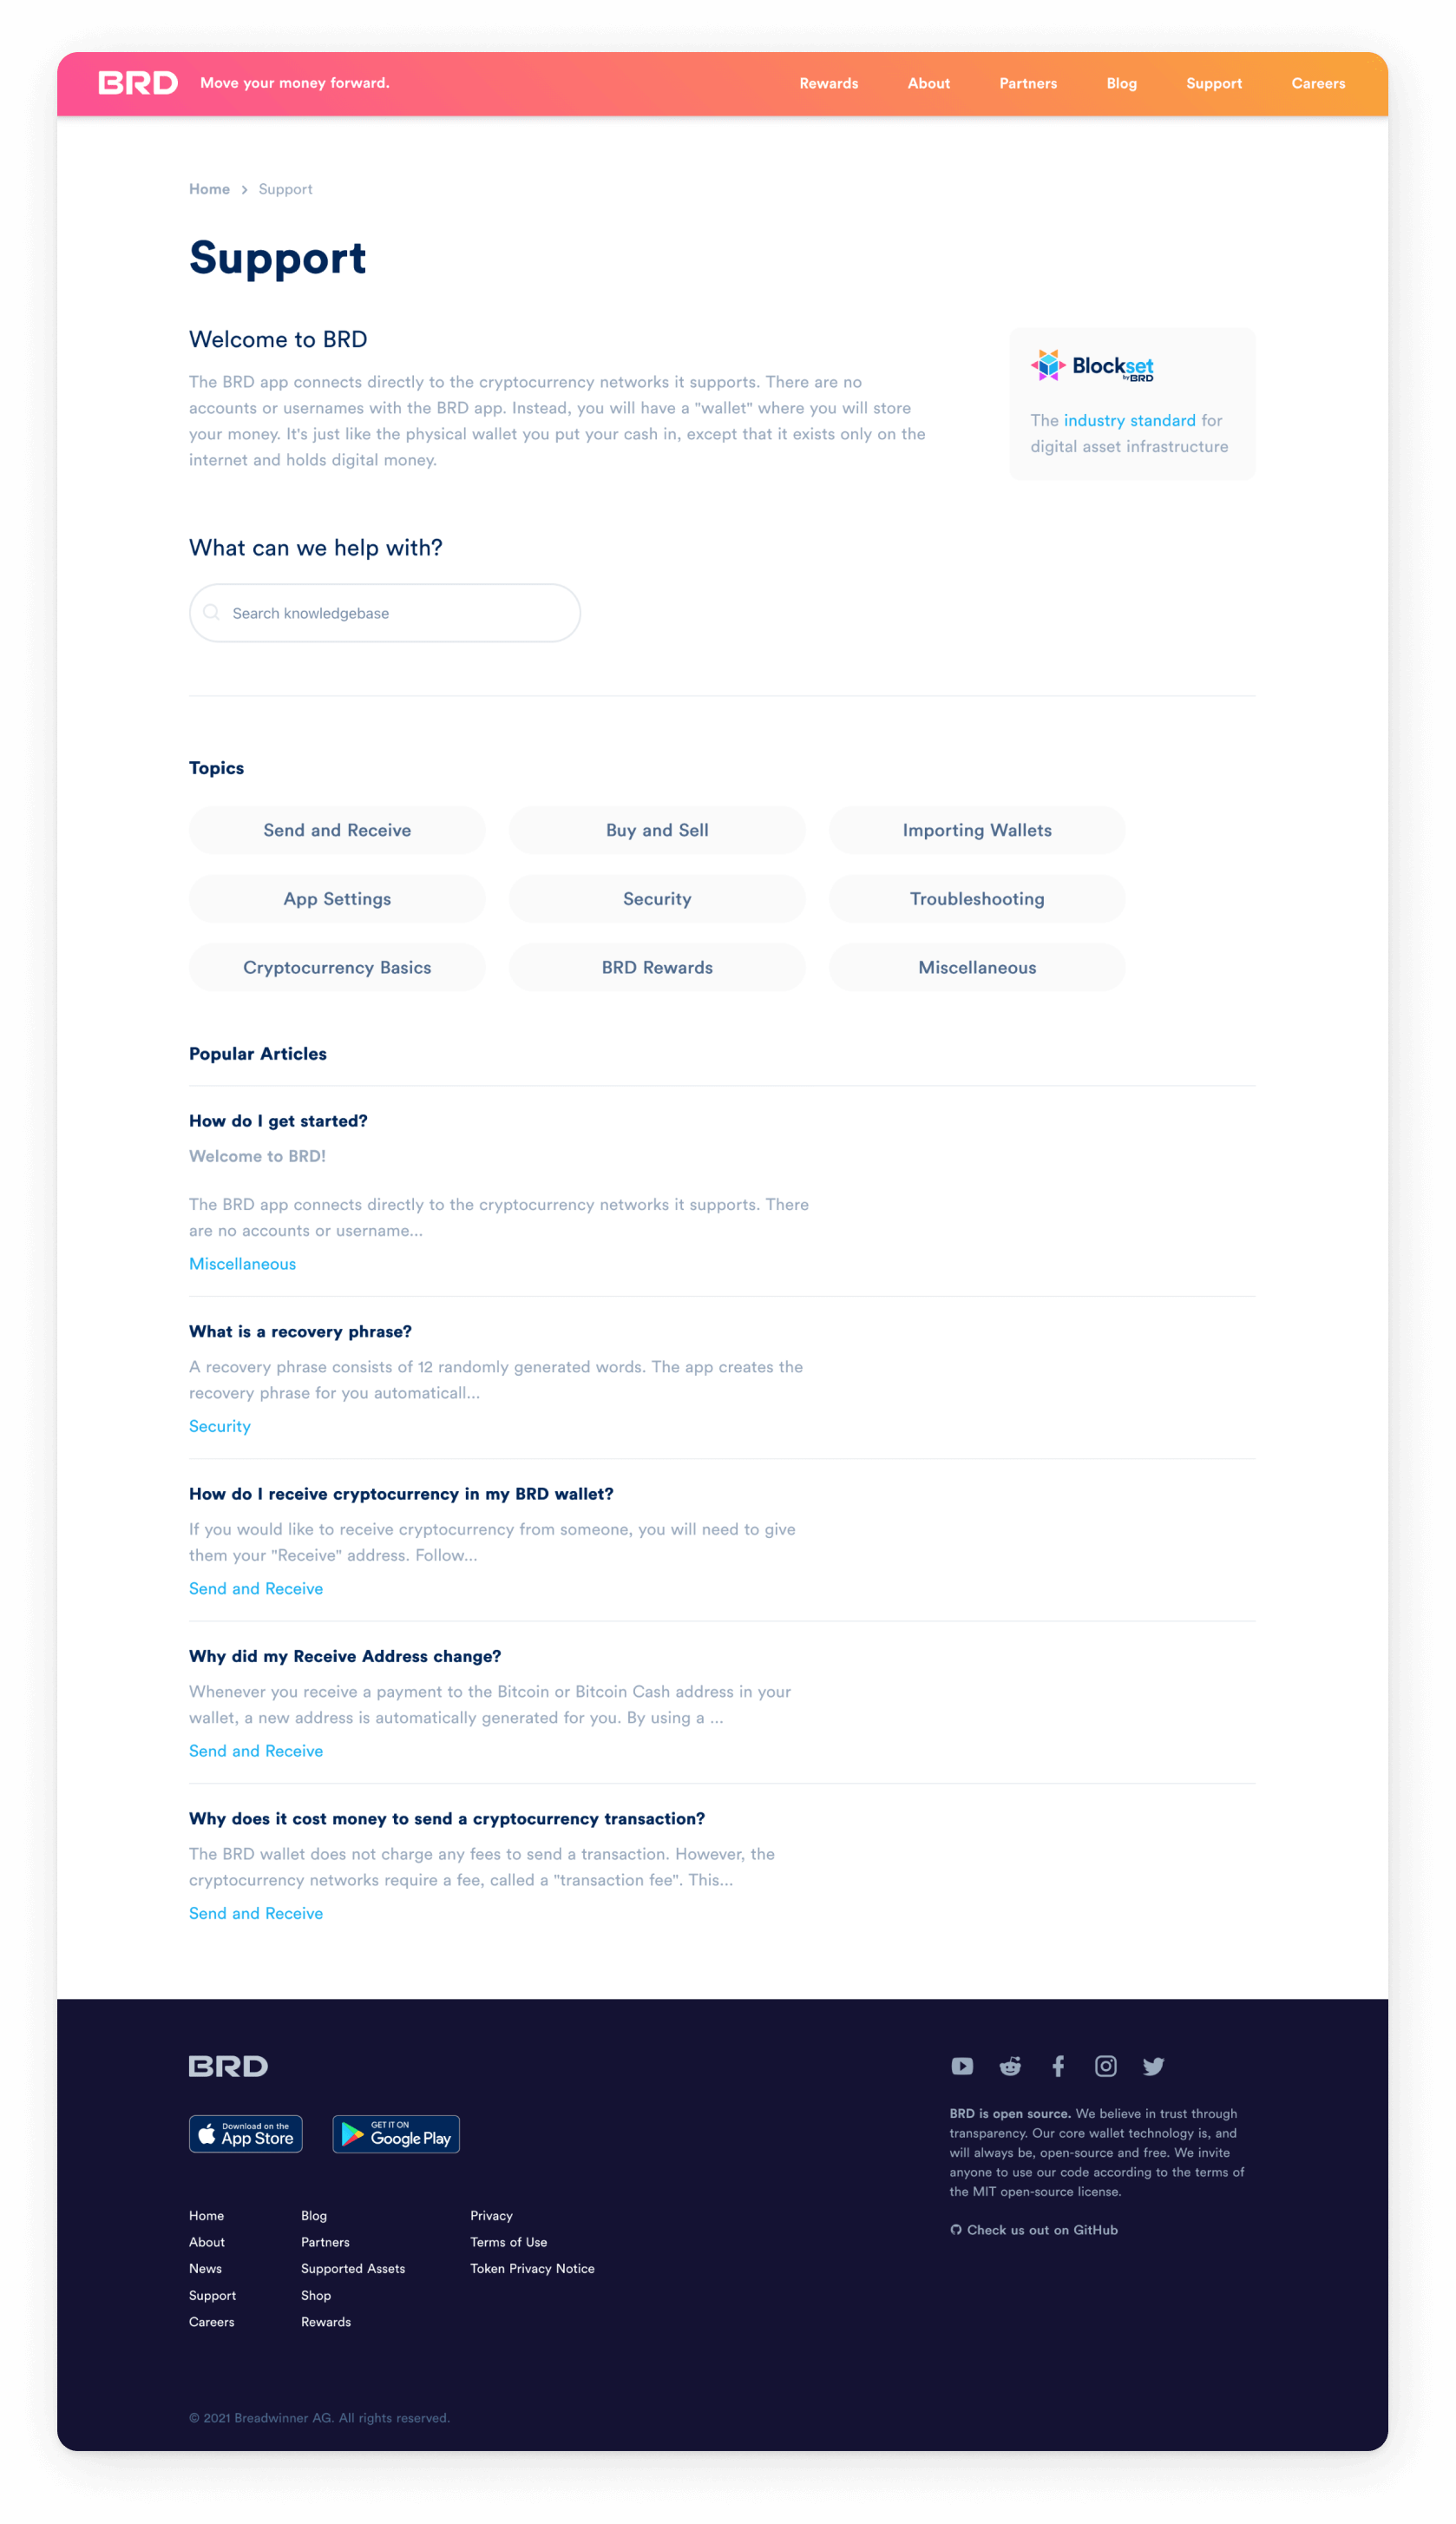 BRD website interface - Support page